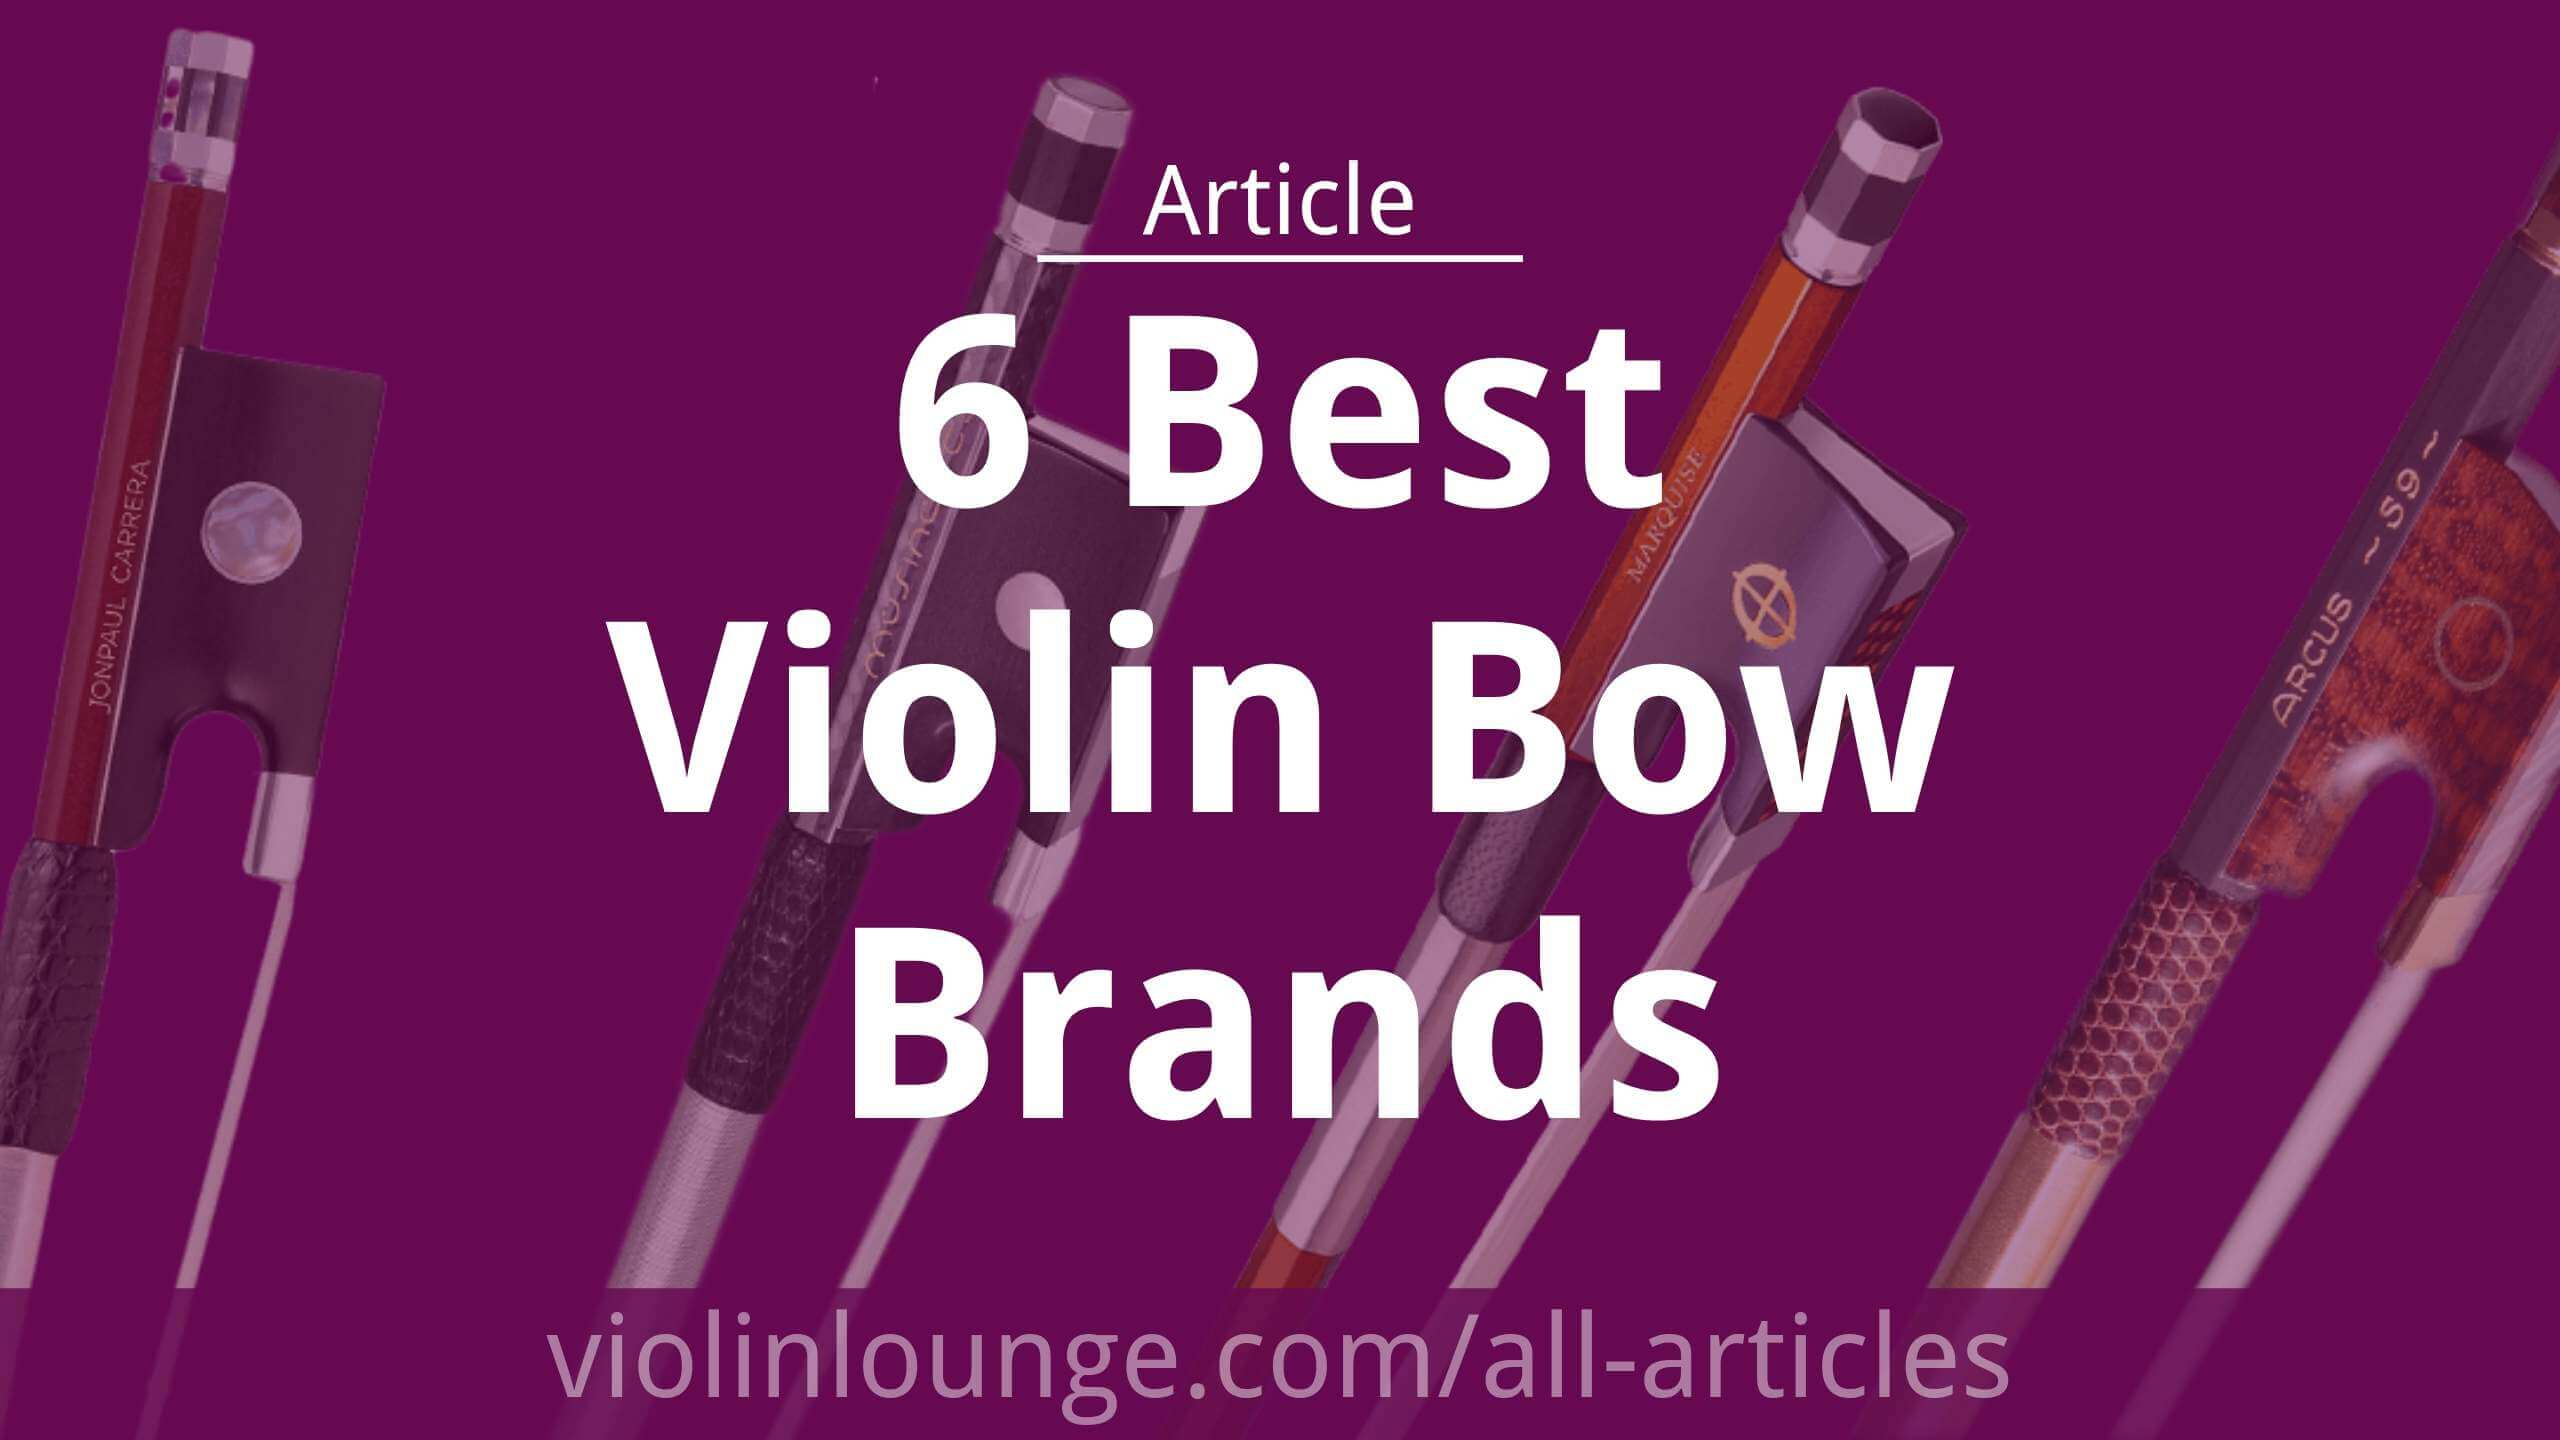 Best Bows 2020.6 Best Violin Bow Brands Of 2020 Violin Lounge